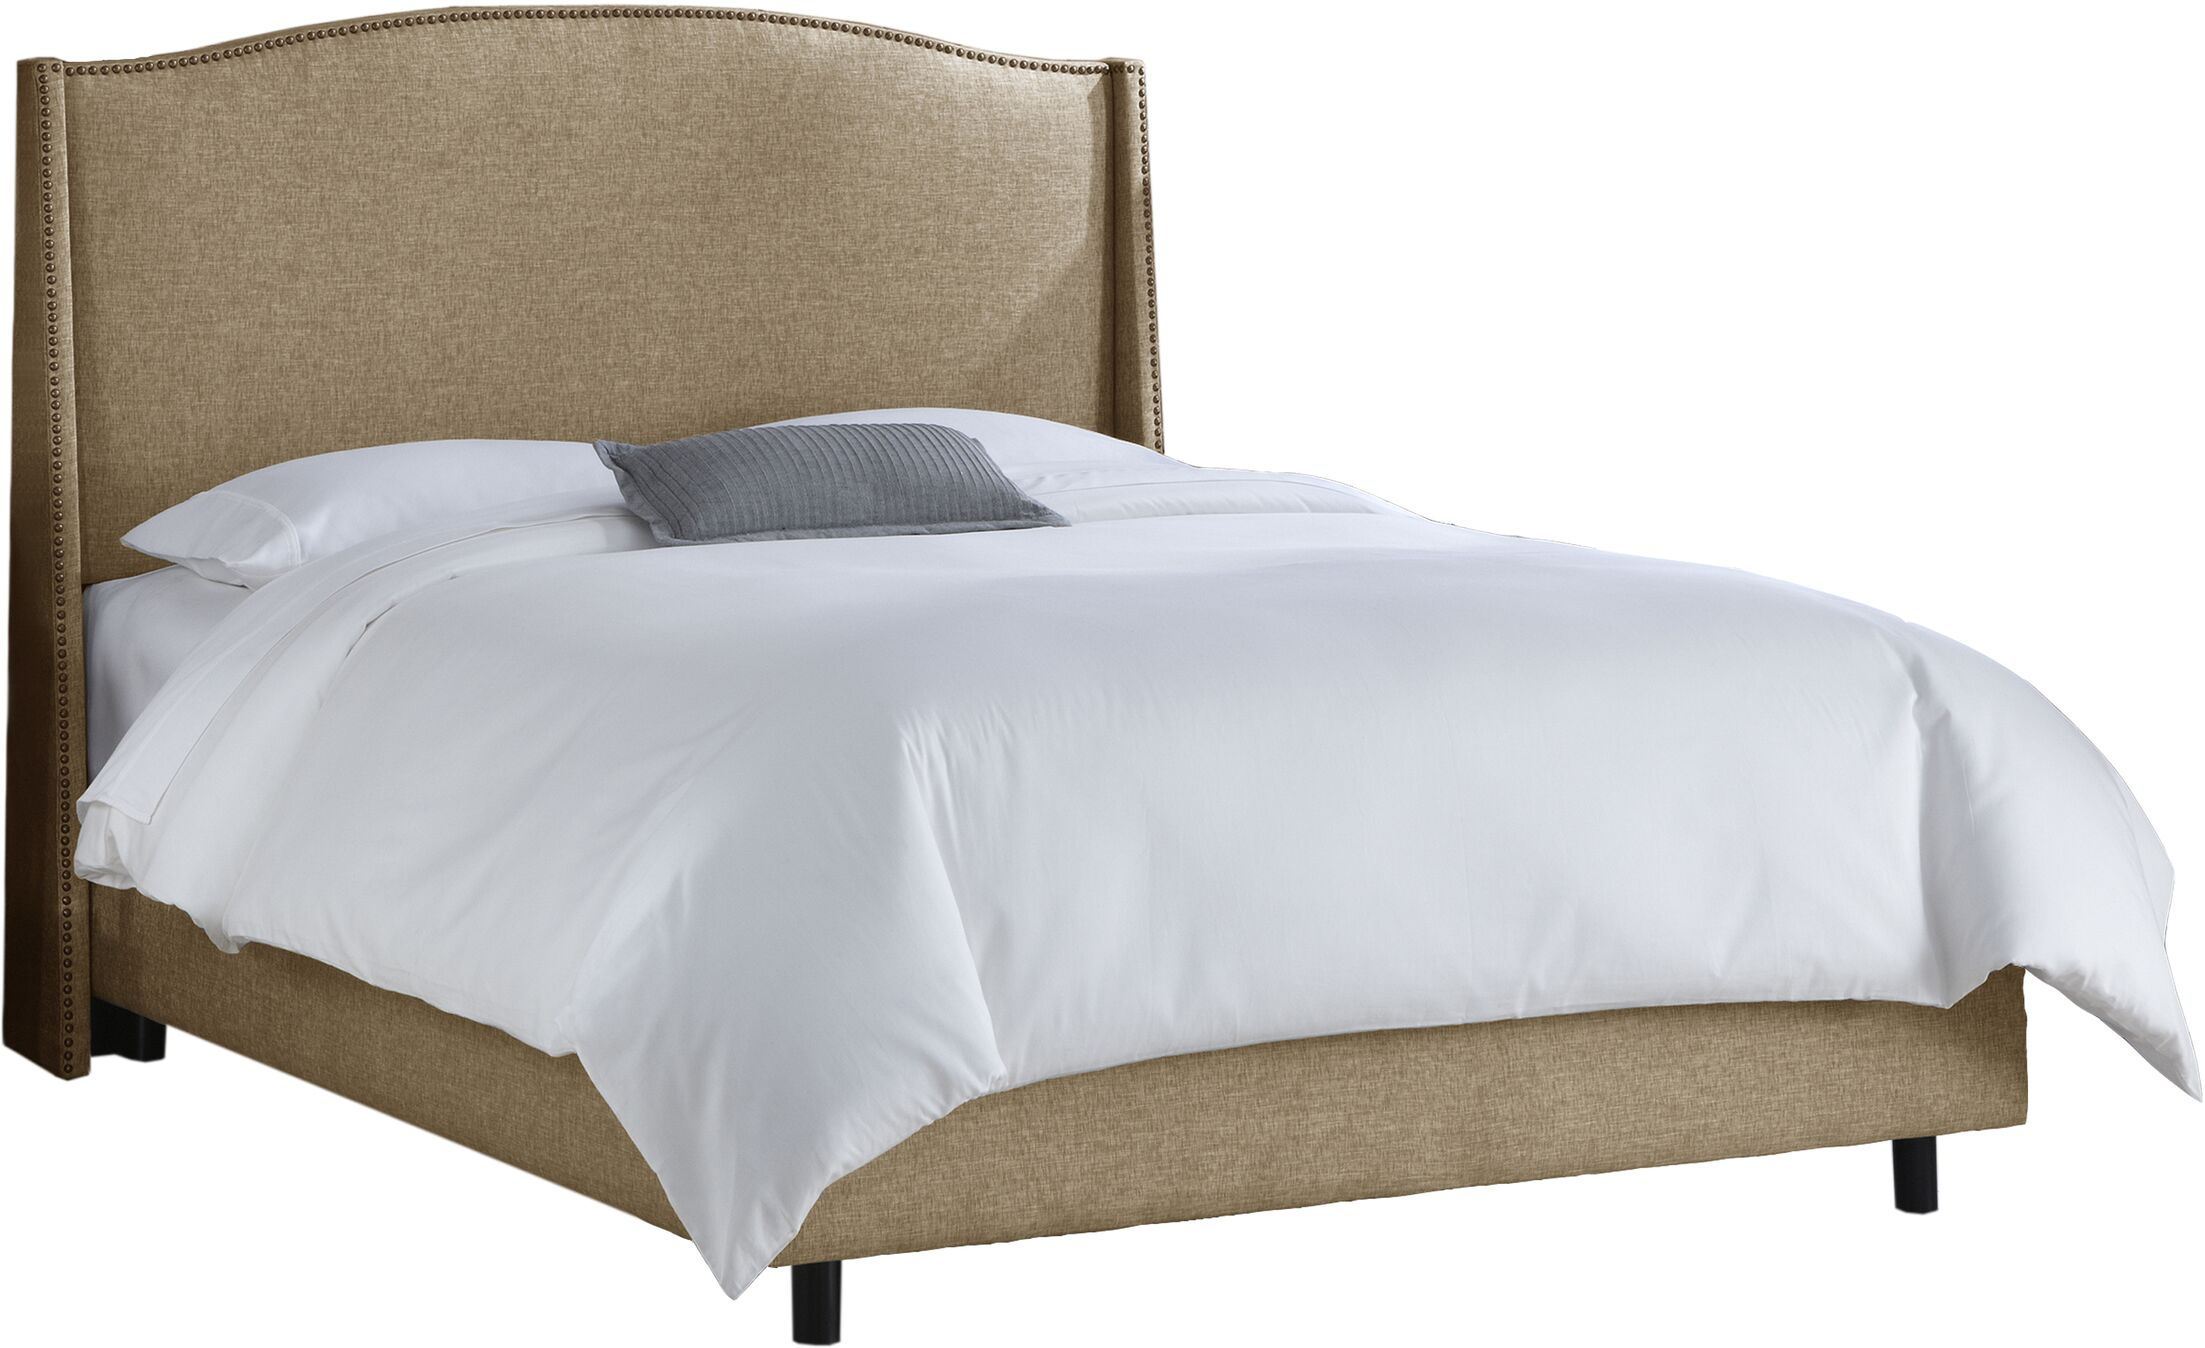 Nealon Upholstered Panel Bed Size: King, Color: Polyester - Groupie Gunmetal